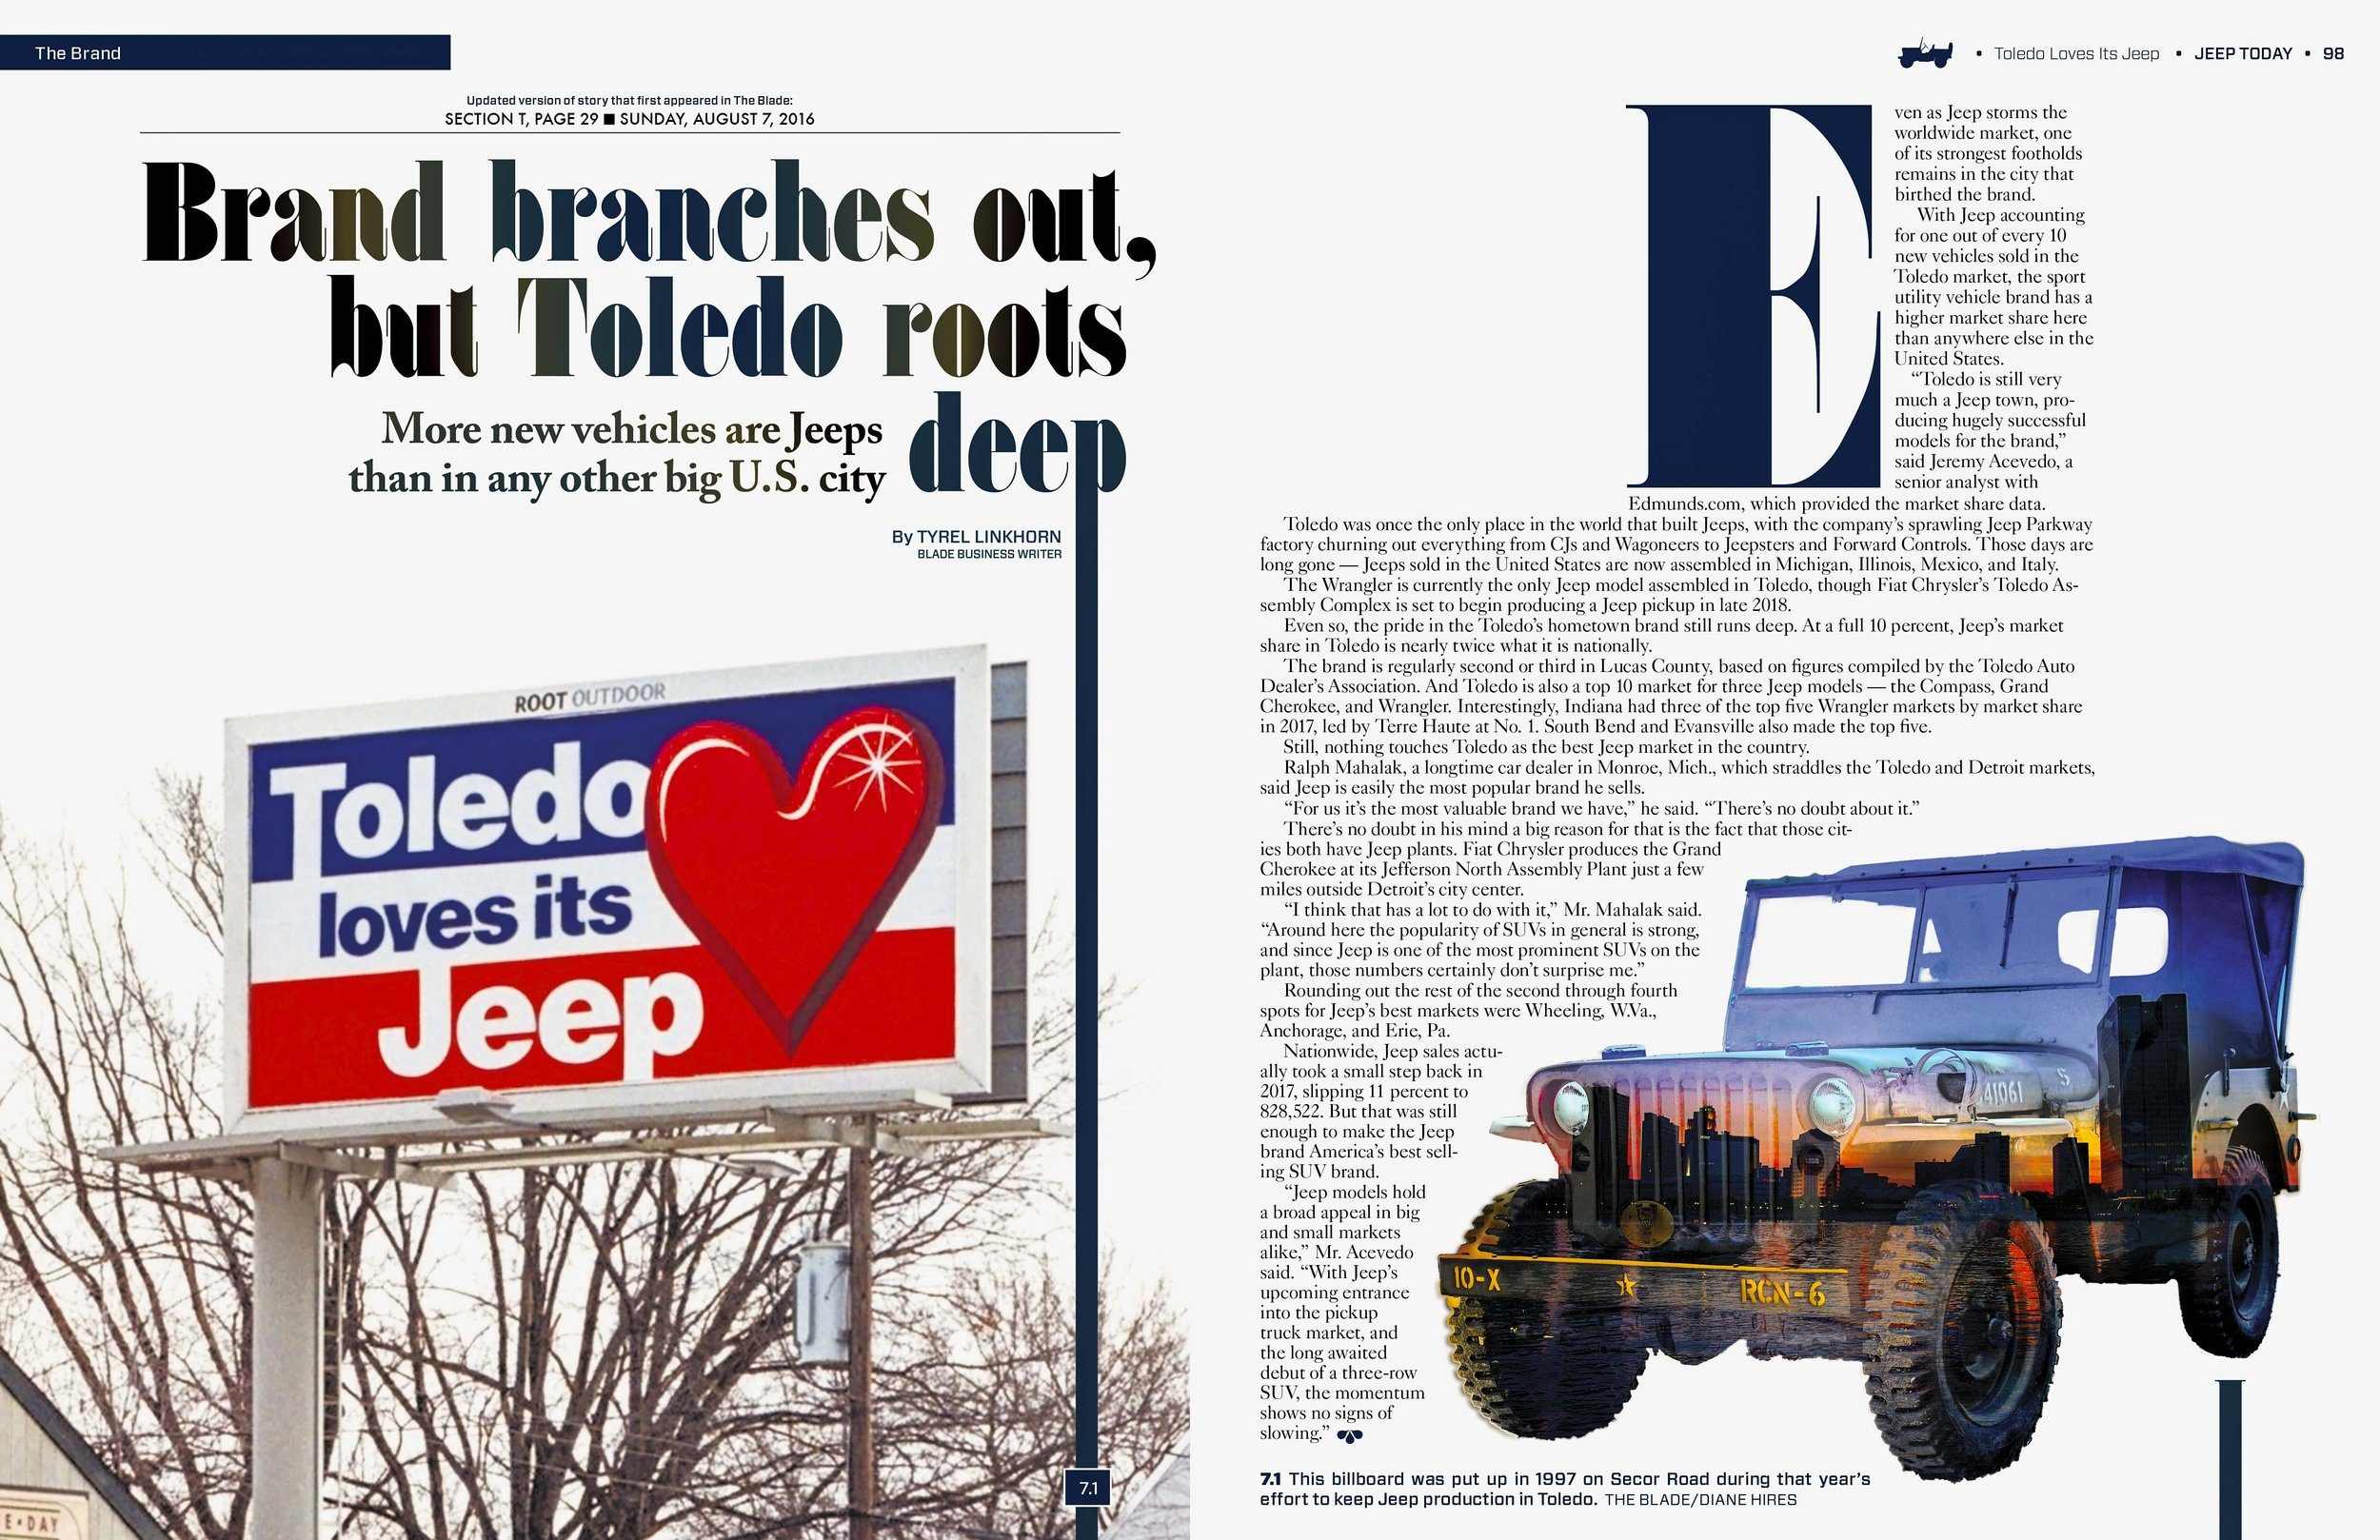 toledo loves its jeep 2nd edition the blade vault toledo loves its jeep 2nd edition the blade vault